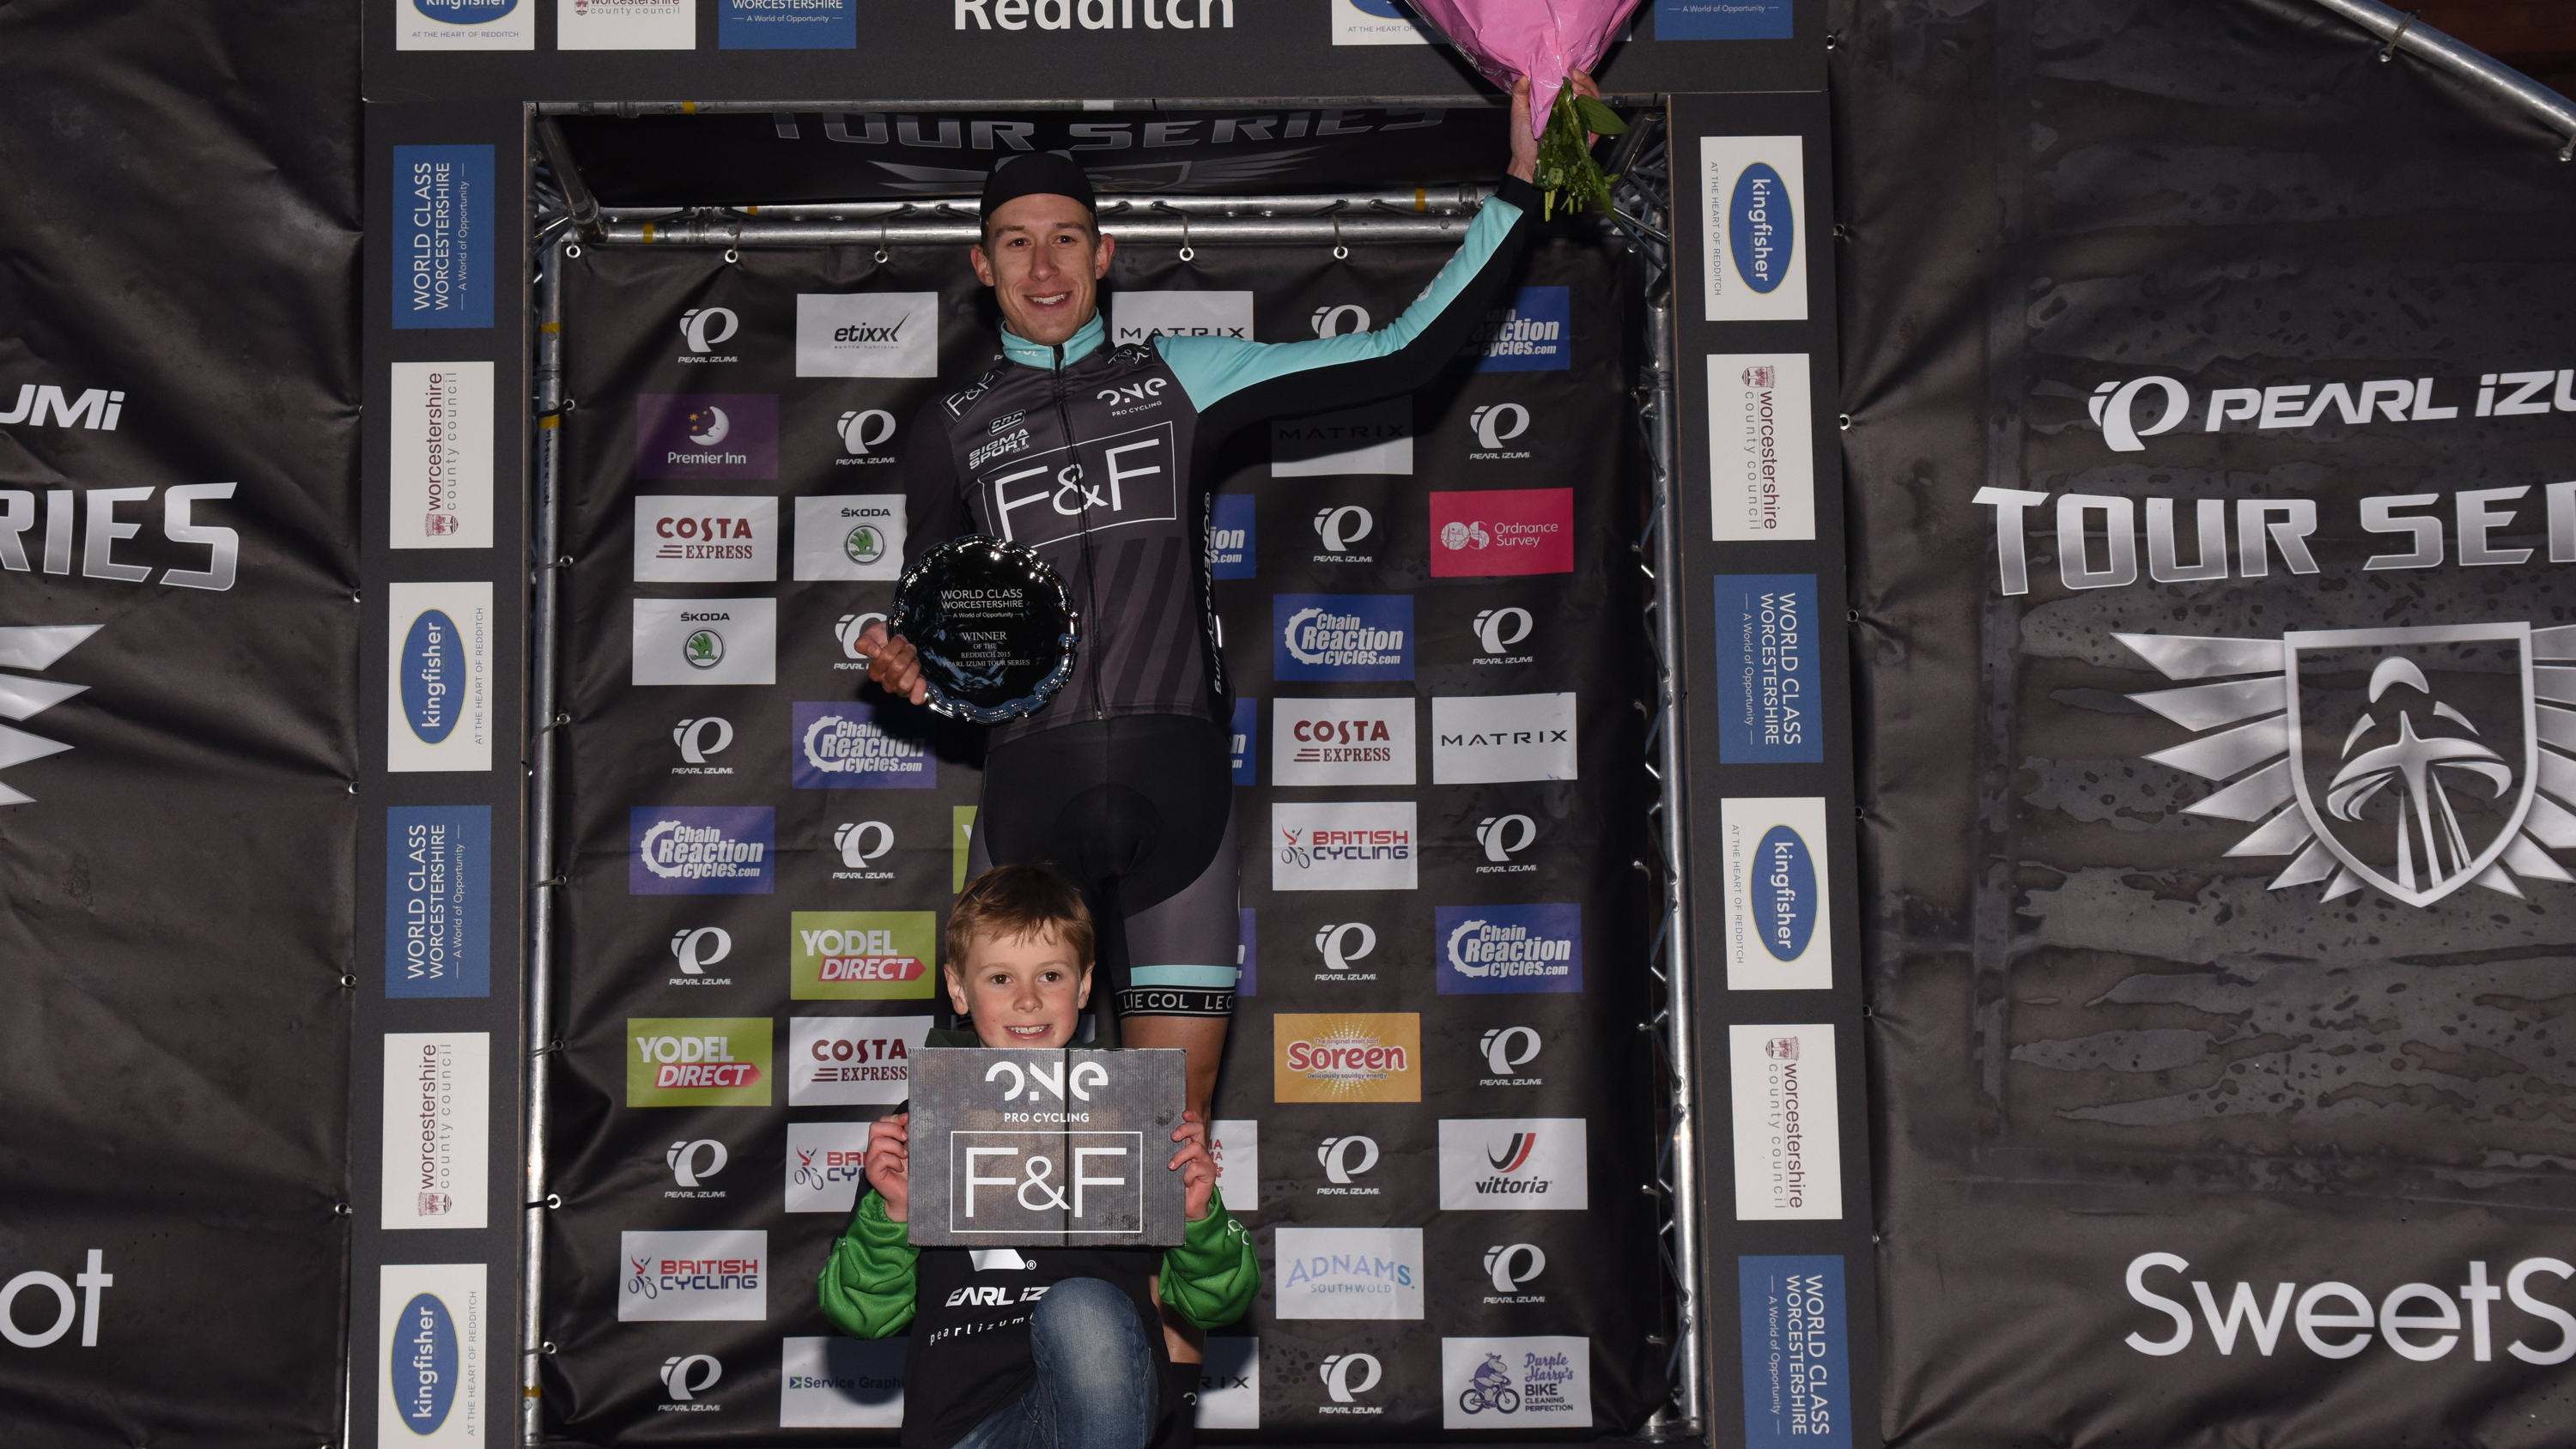 One Pro Cycling's Jon Mould, individual winner at round two of the Pearl Izumi Tour Series in Redditch.